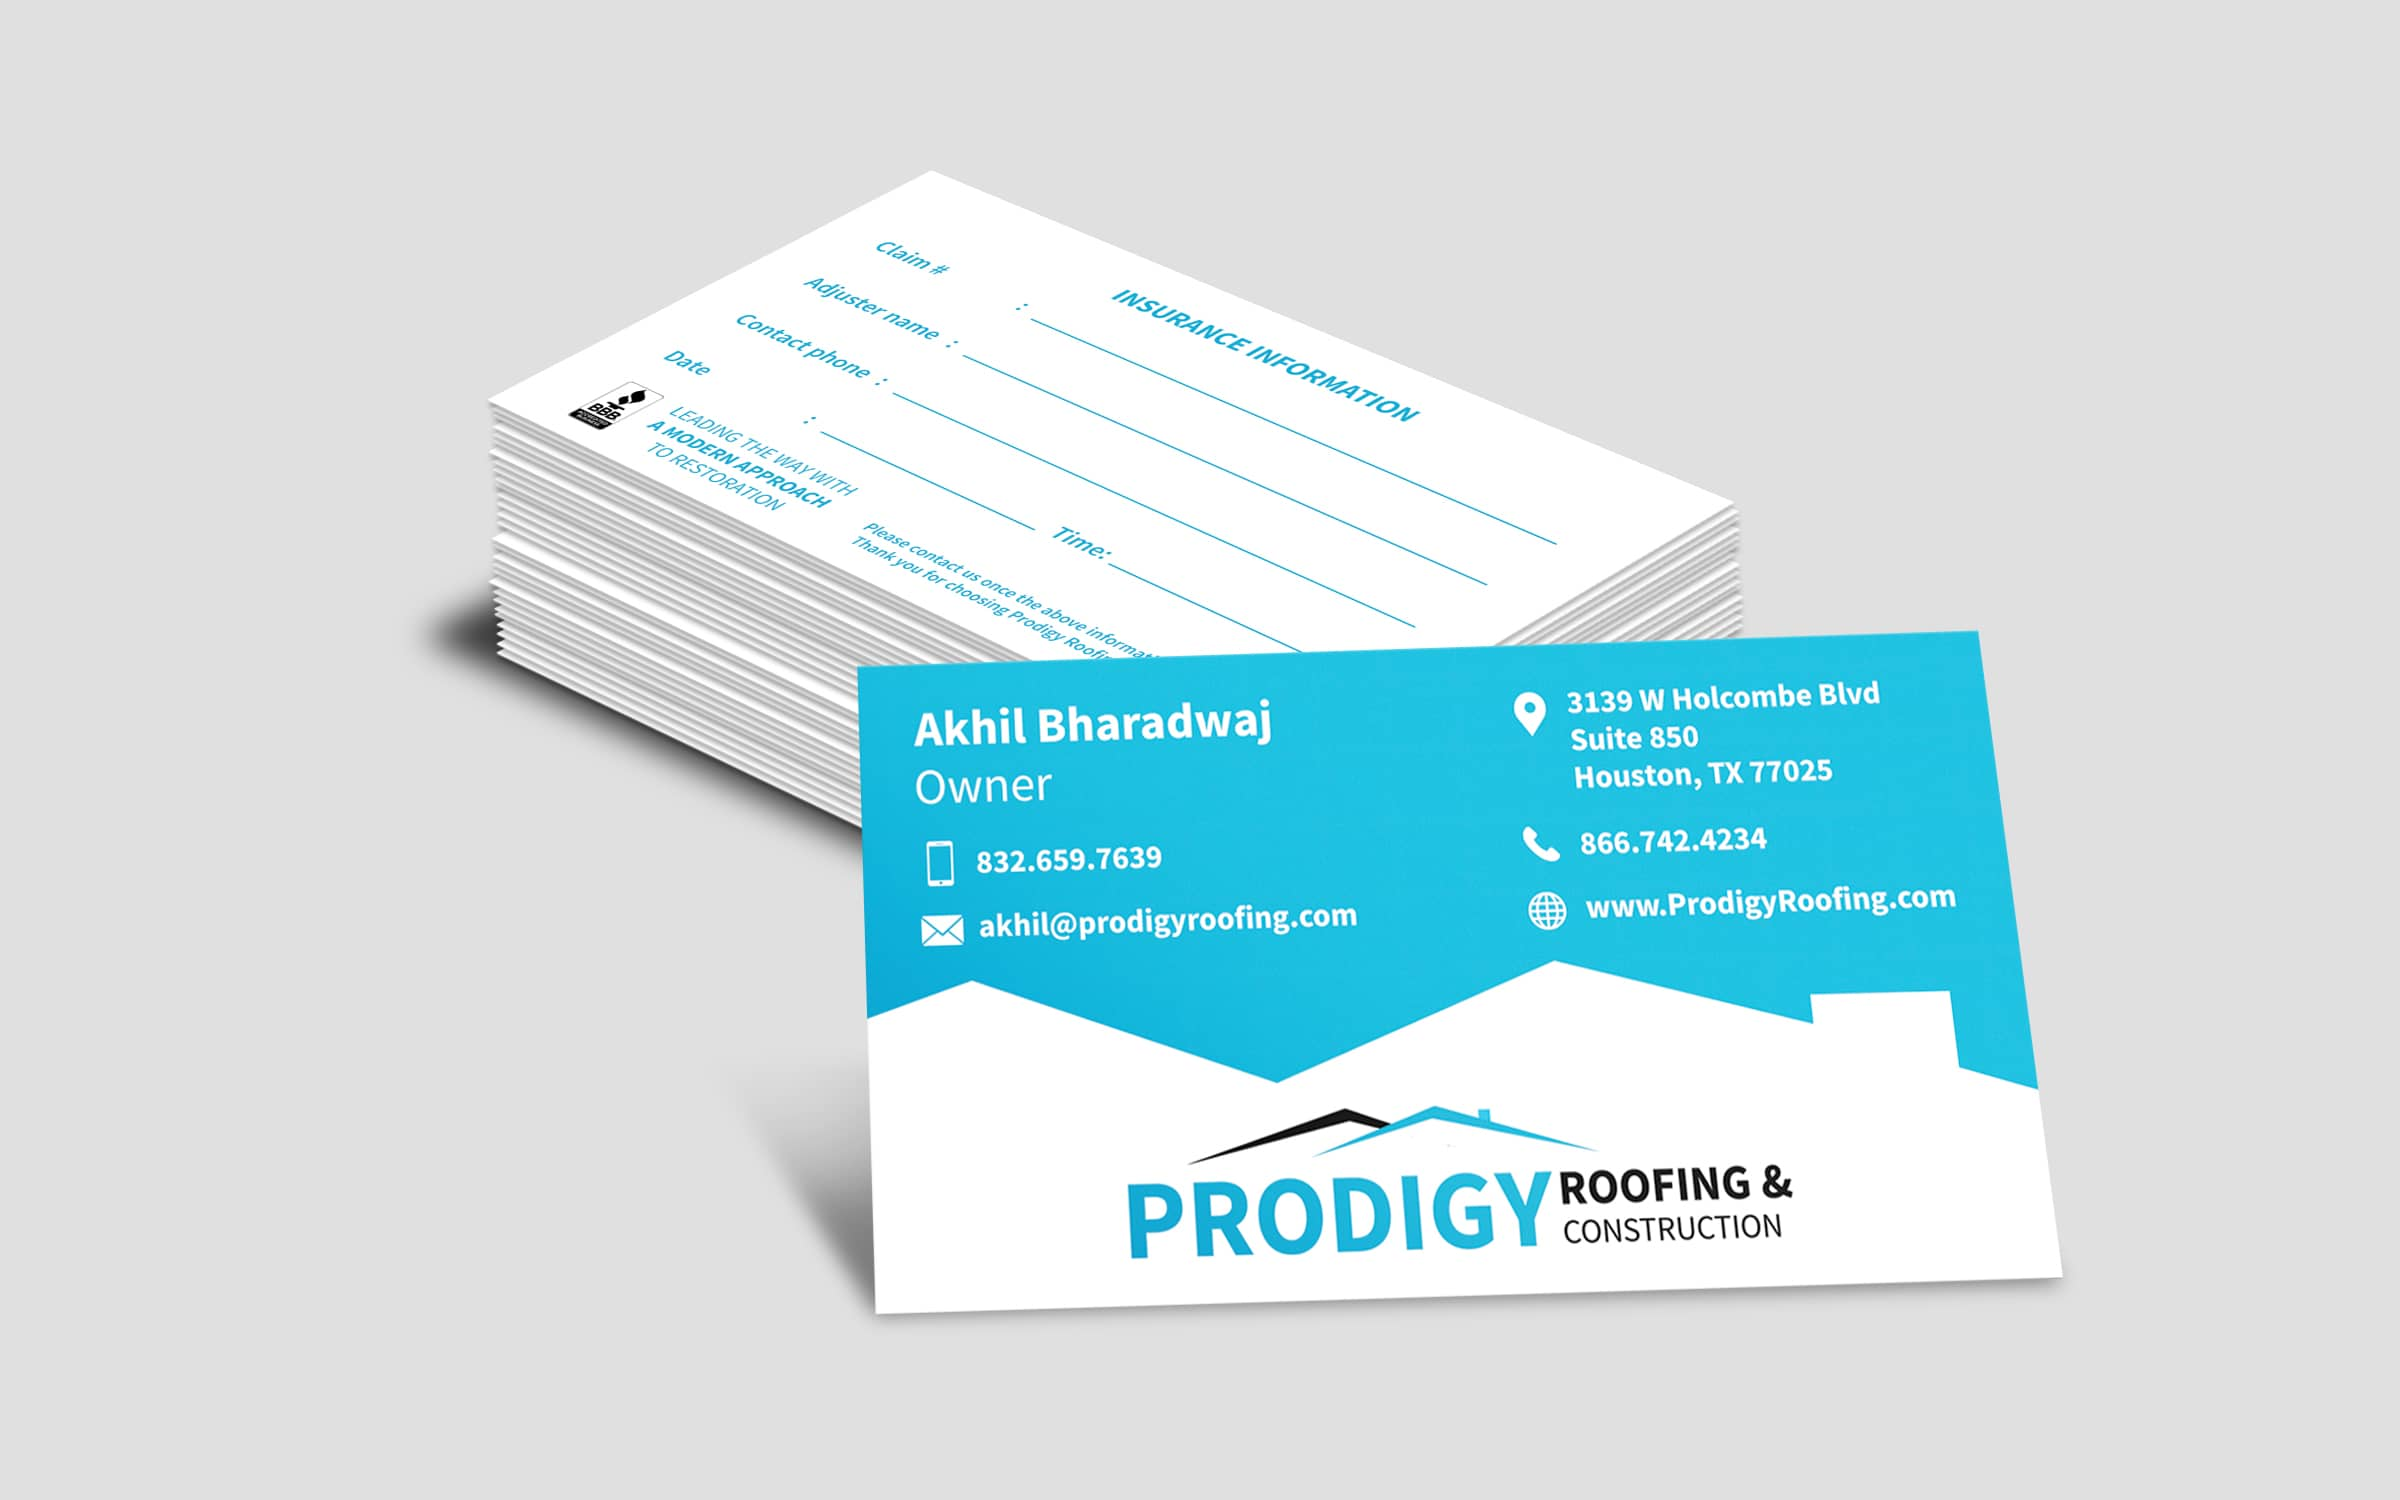 PRODIGY ROOFING SYSTEM BUSINESS CARDS · IMPROZ MARKETING